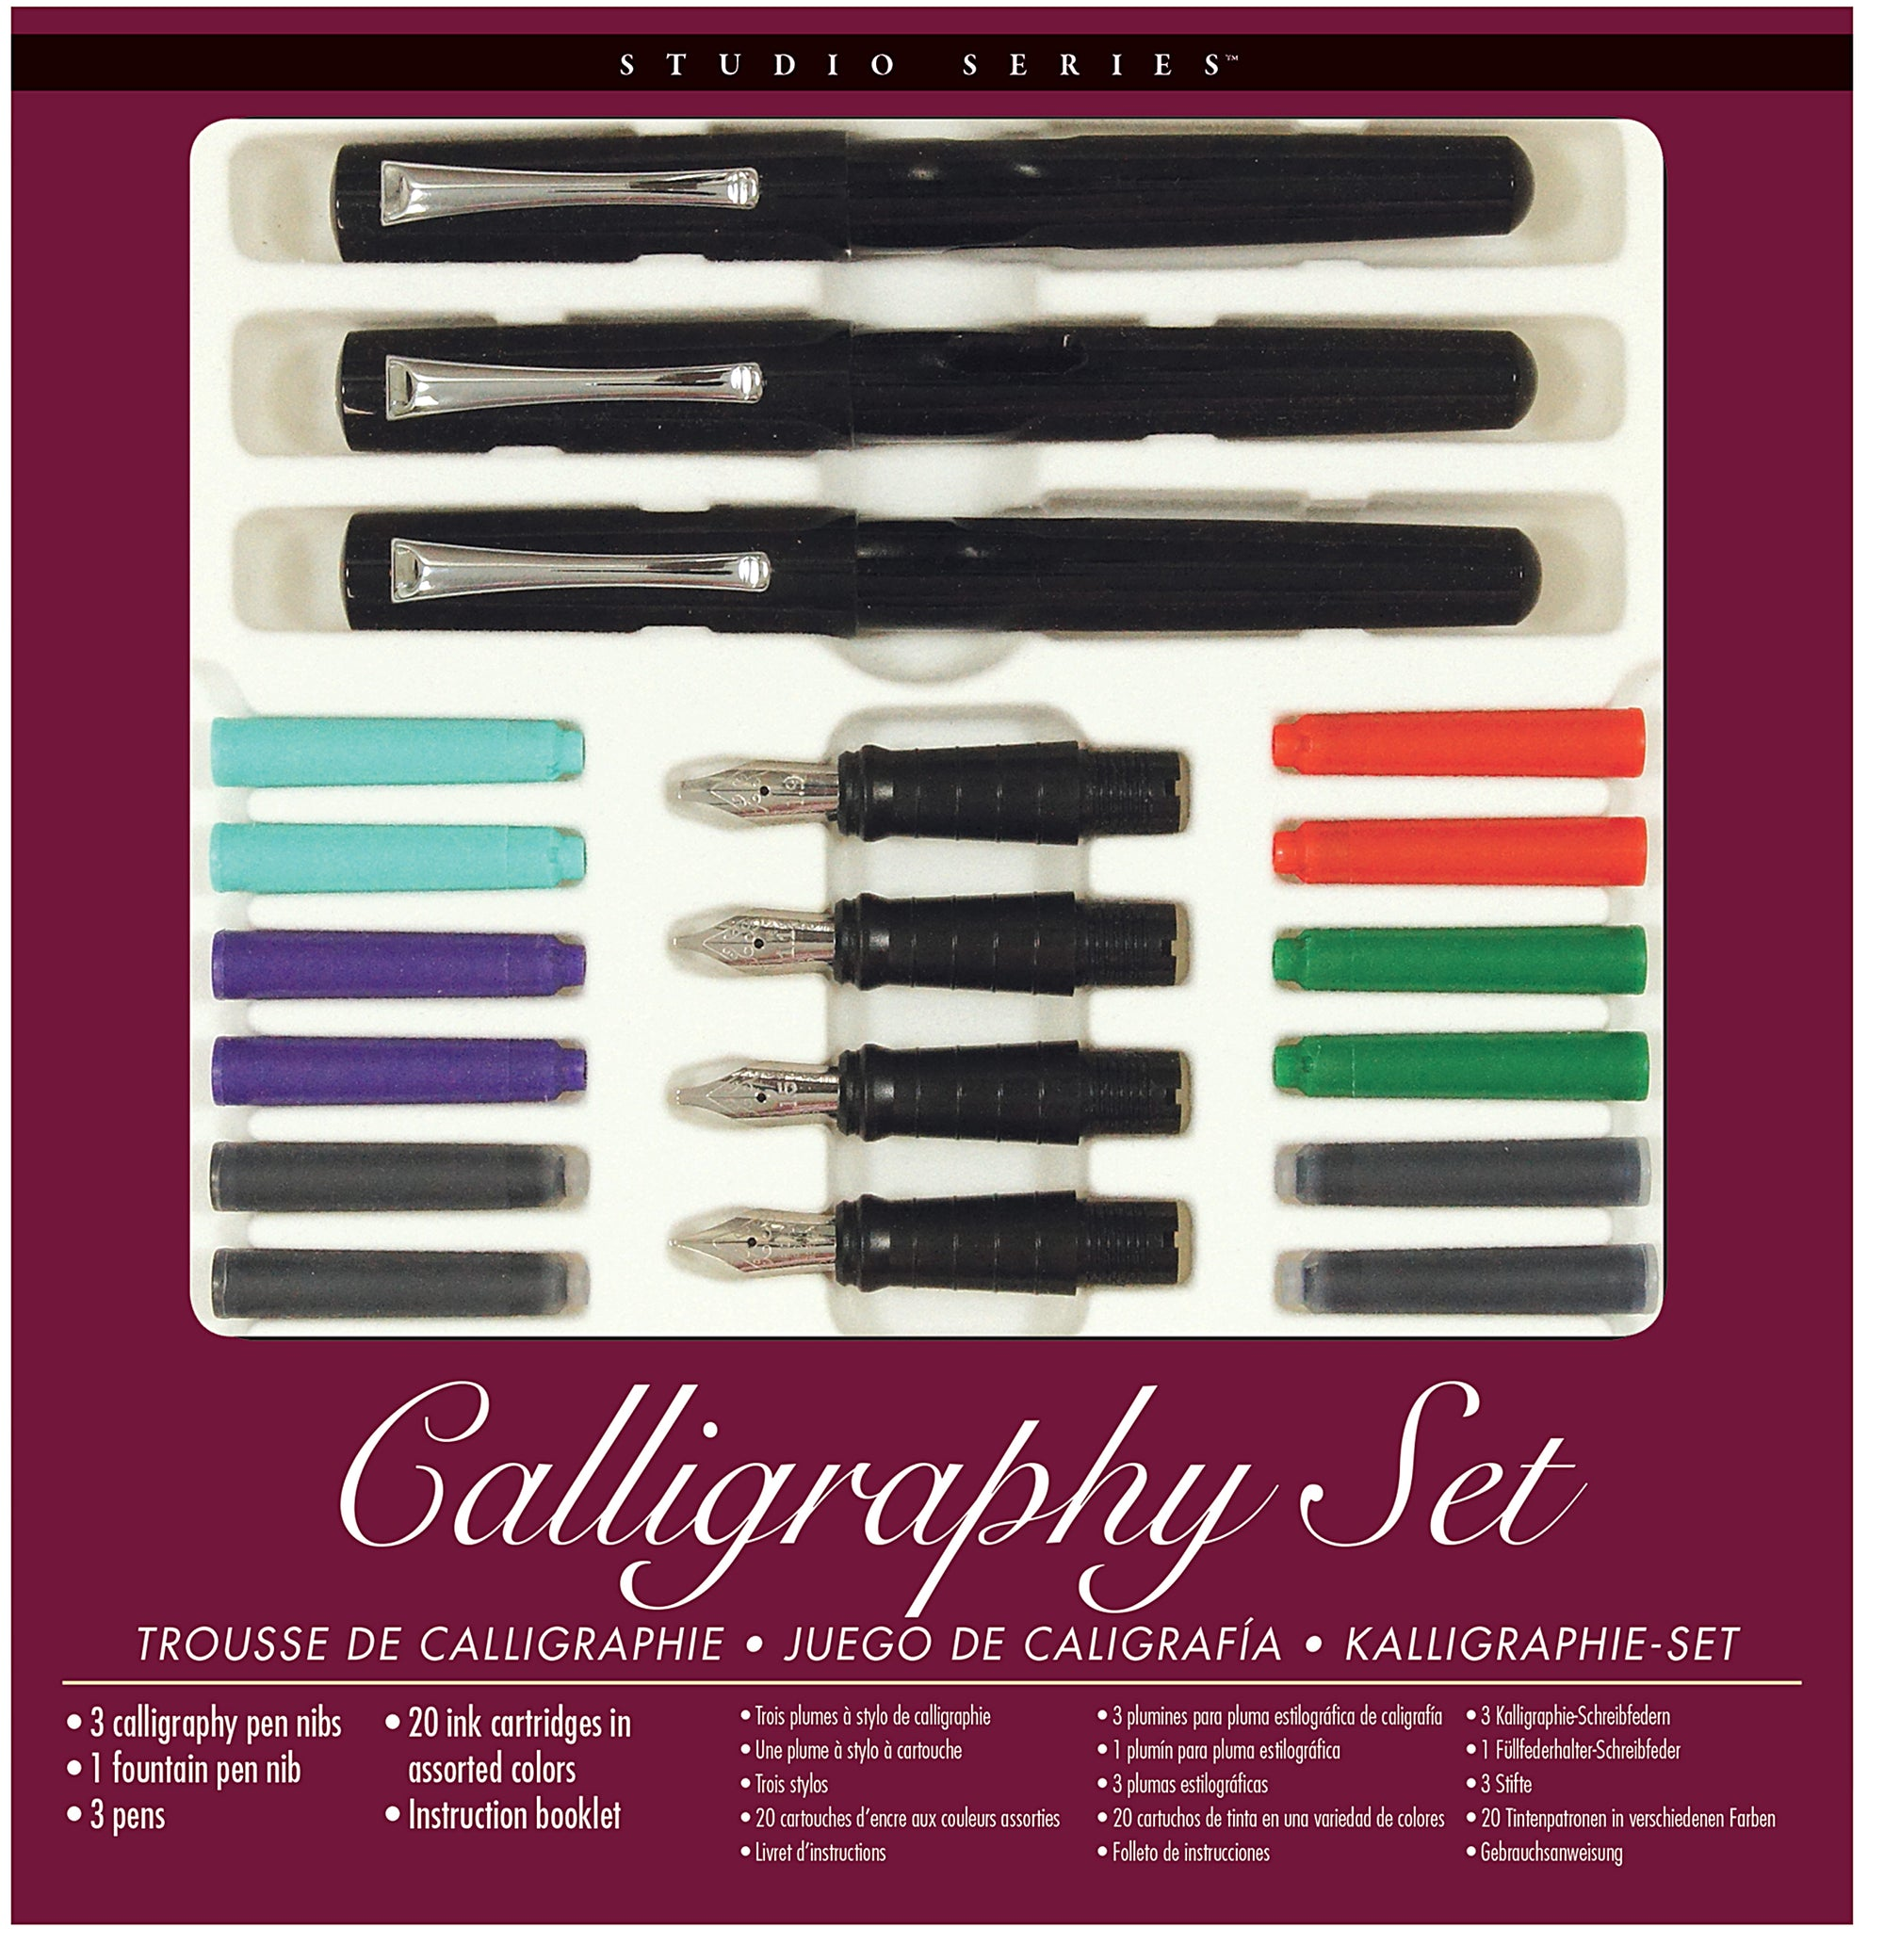 Studio Series Calligraphy Pen Set - Heart of the Home PA